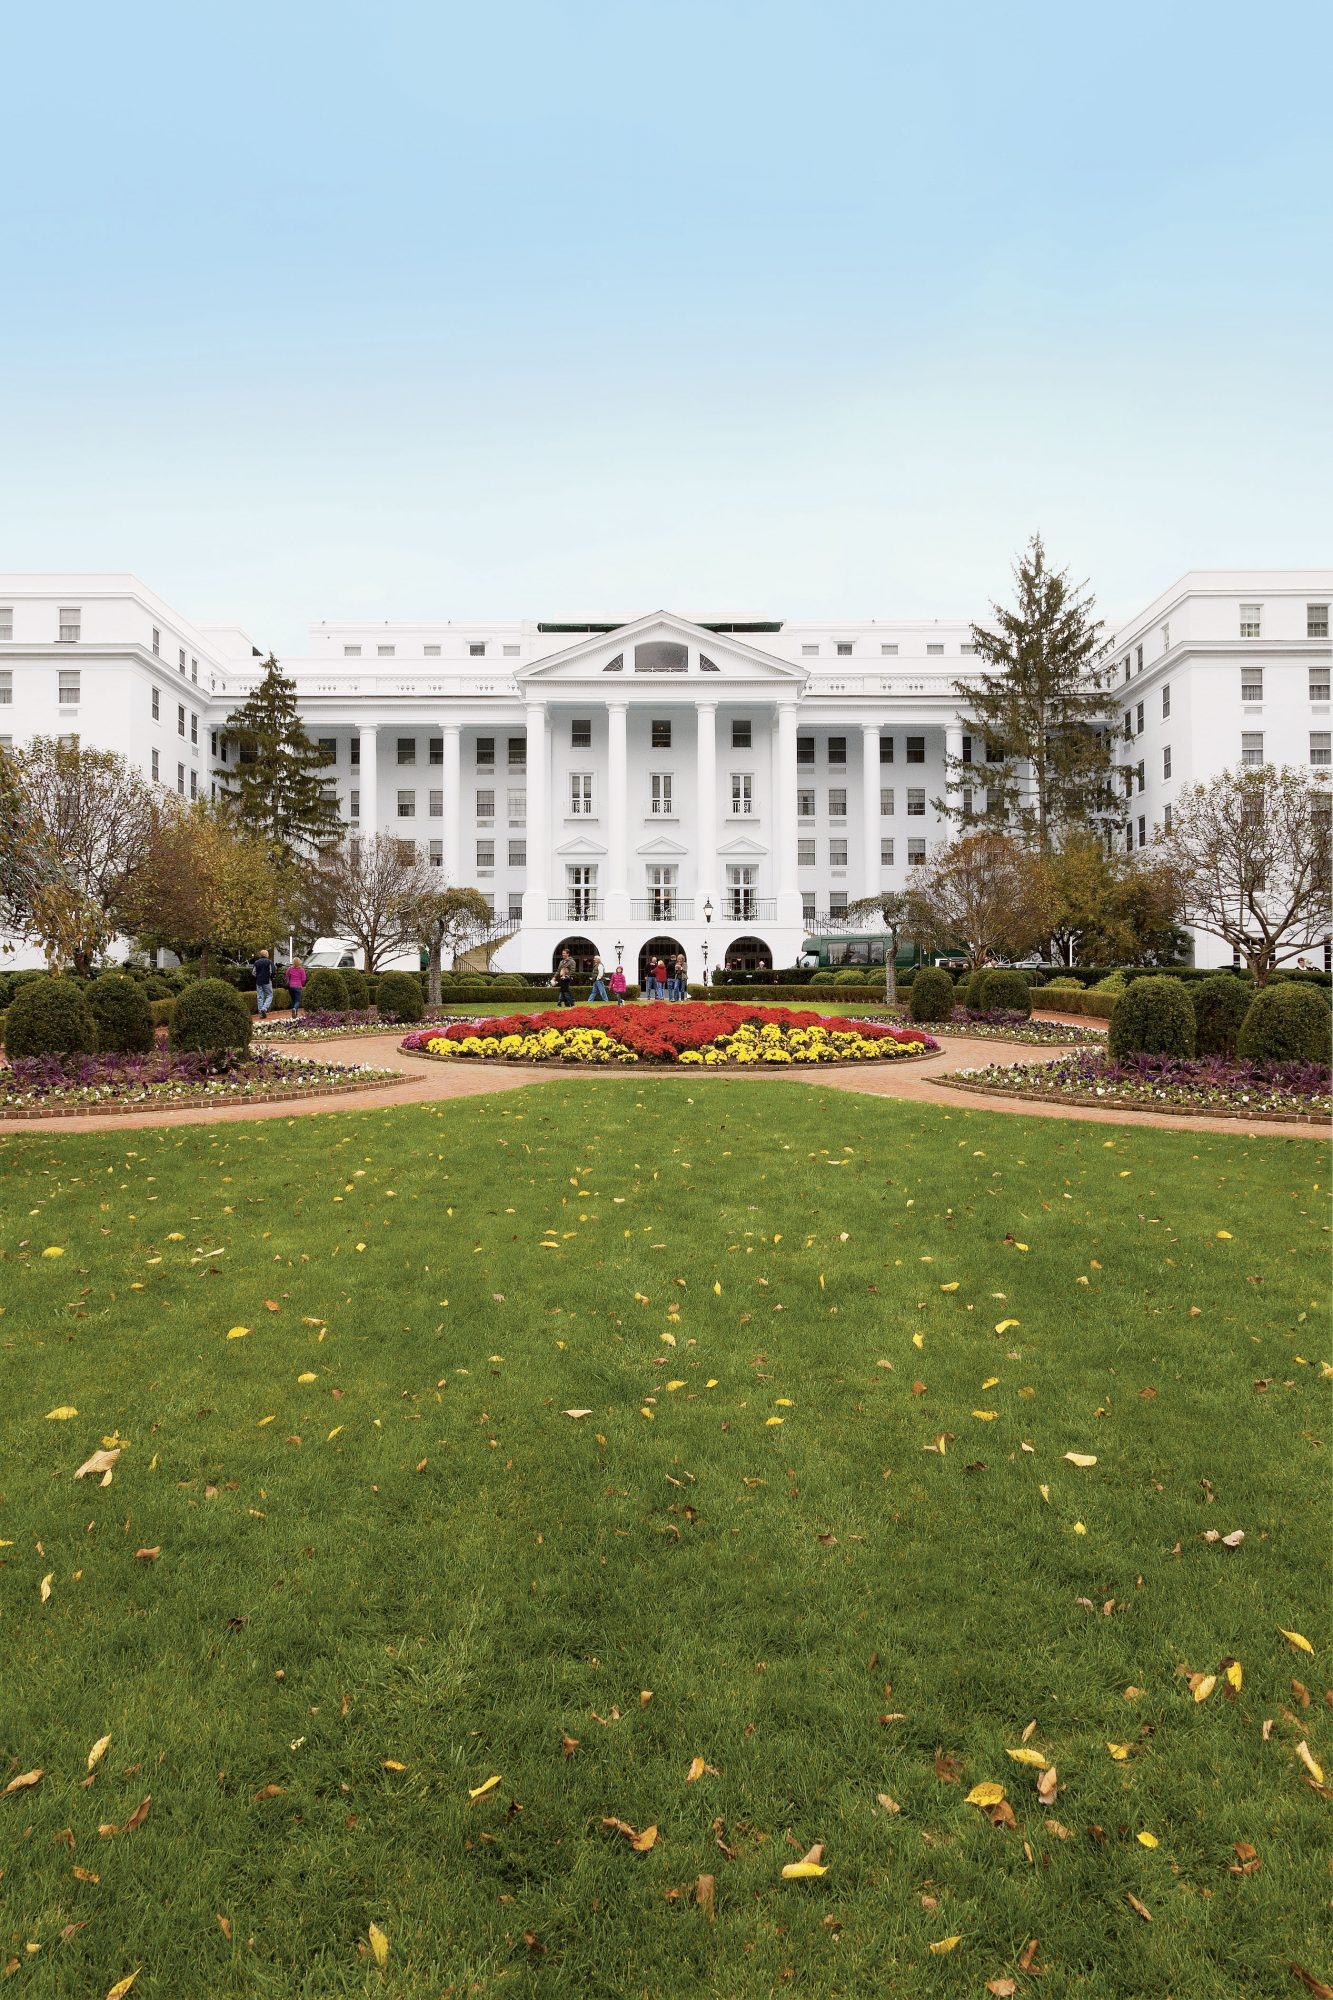 The Greenbrier (White Sulphur Springs, West Virginia)